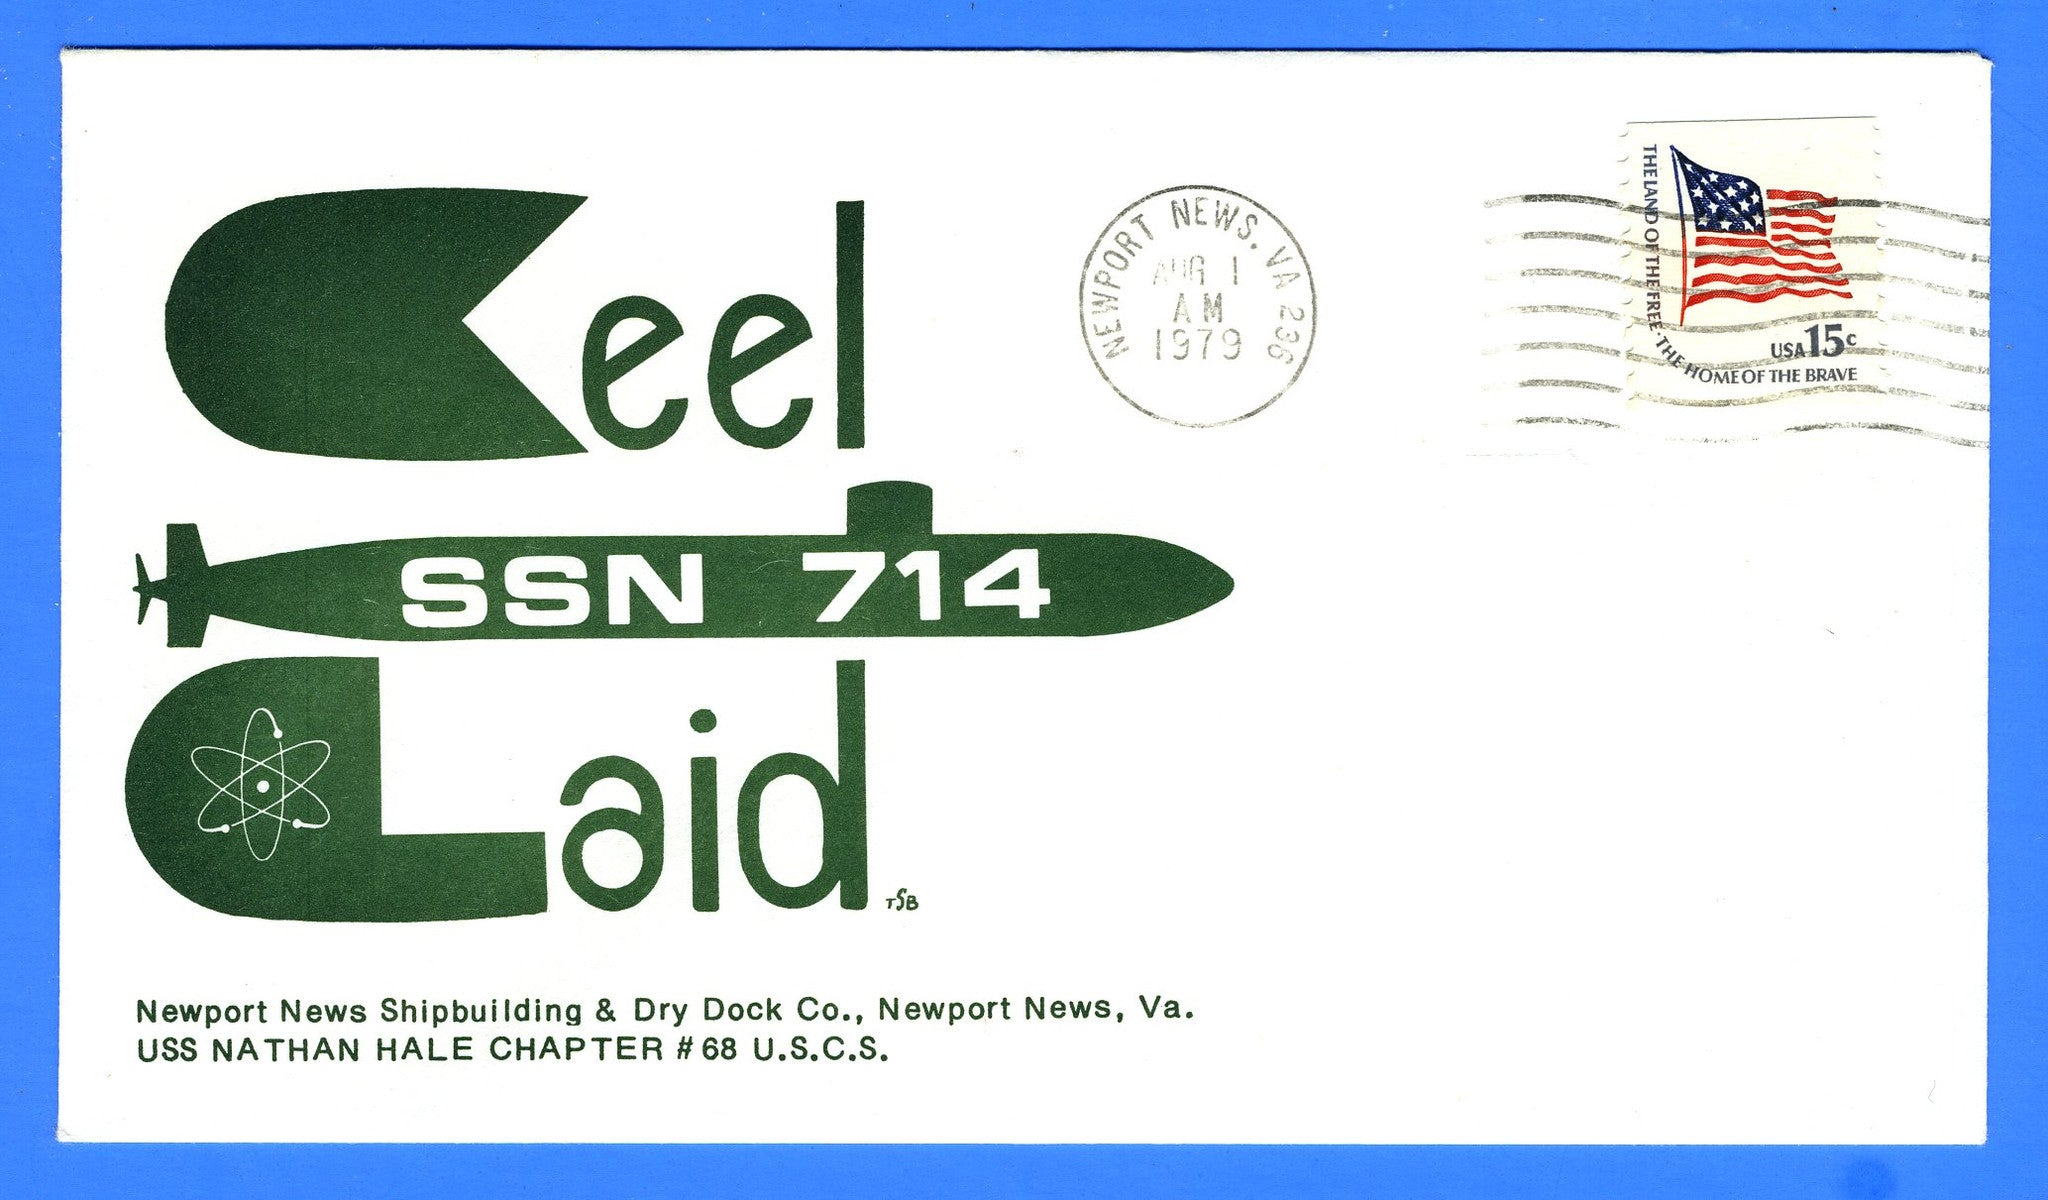 USS Norfolk SSN-714 Keel Laid August 1, 1979